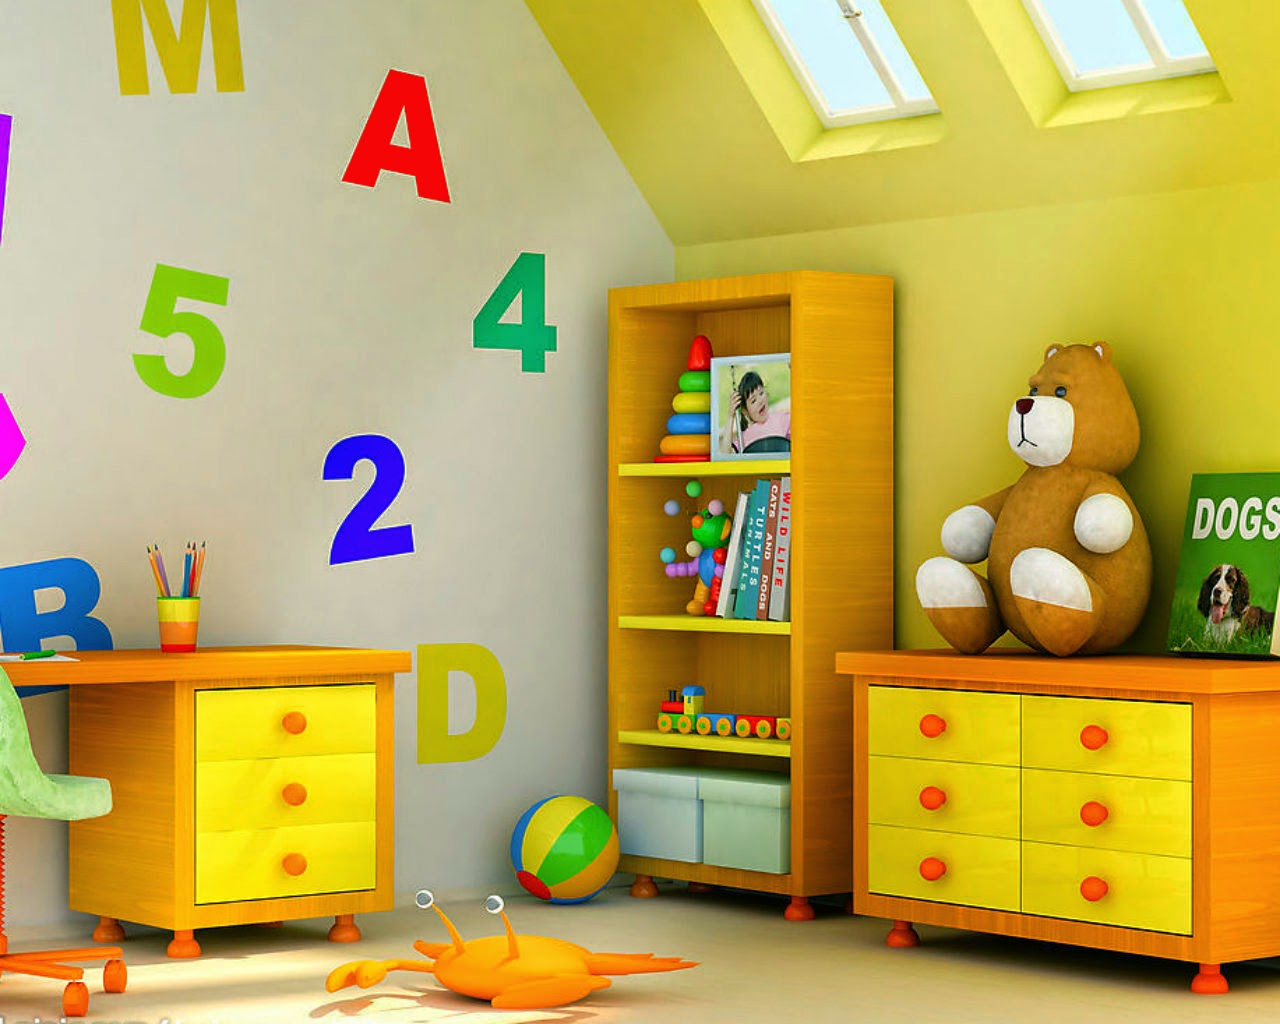 Cute teddy bear wallpapers for little kids and children Wallpaper for childrens room